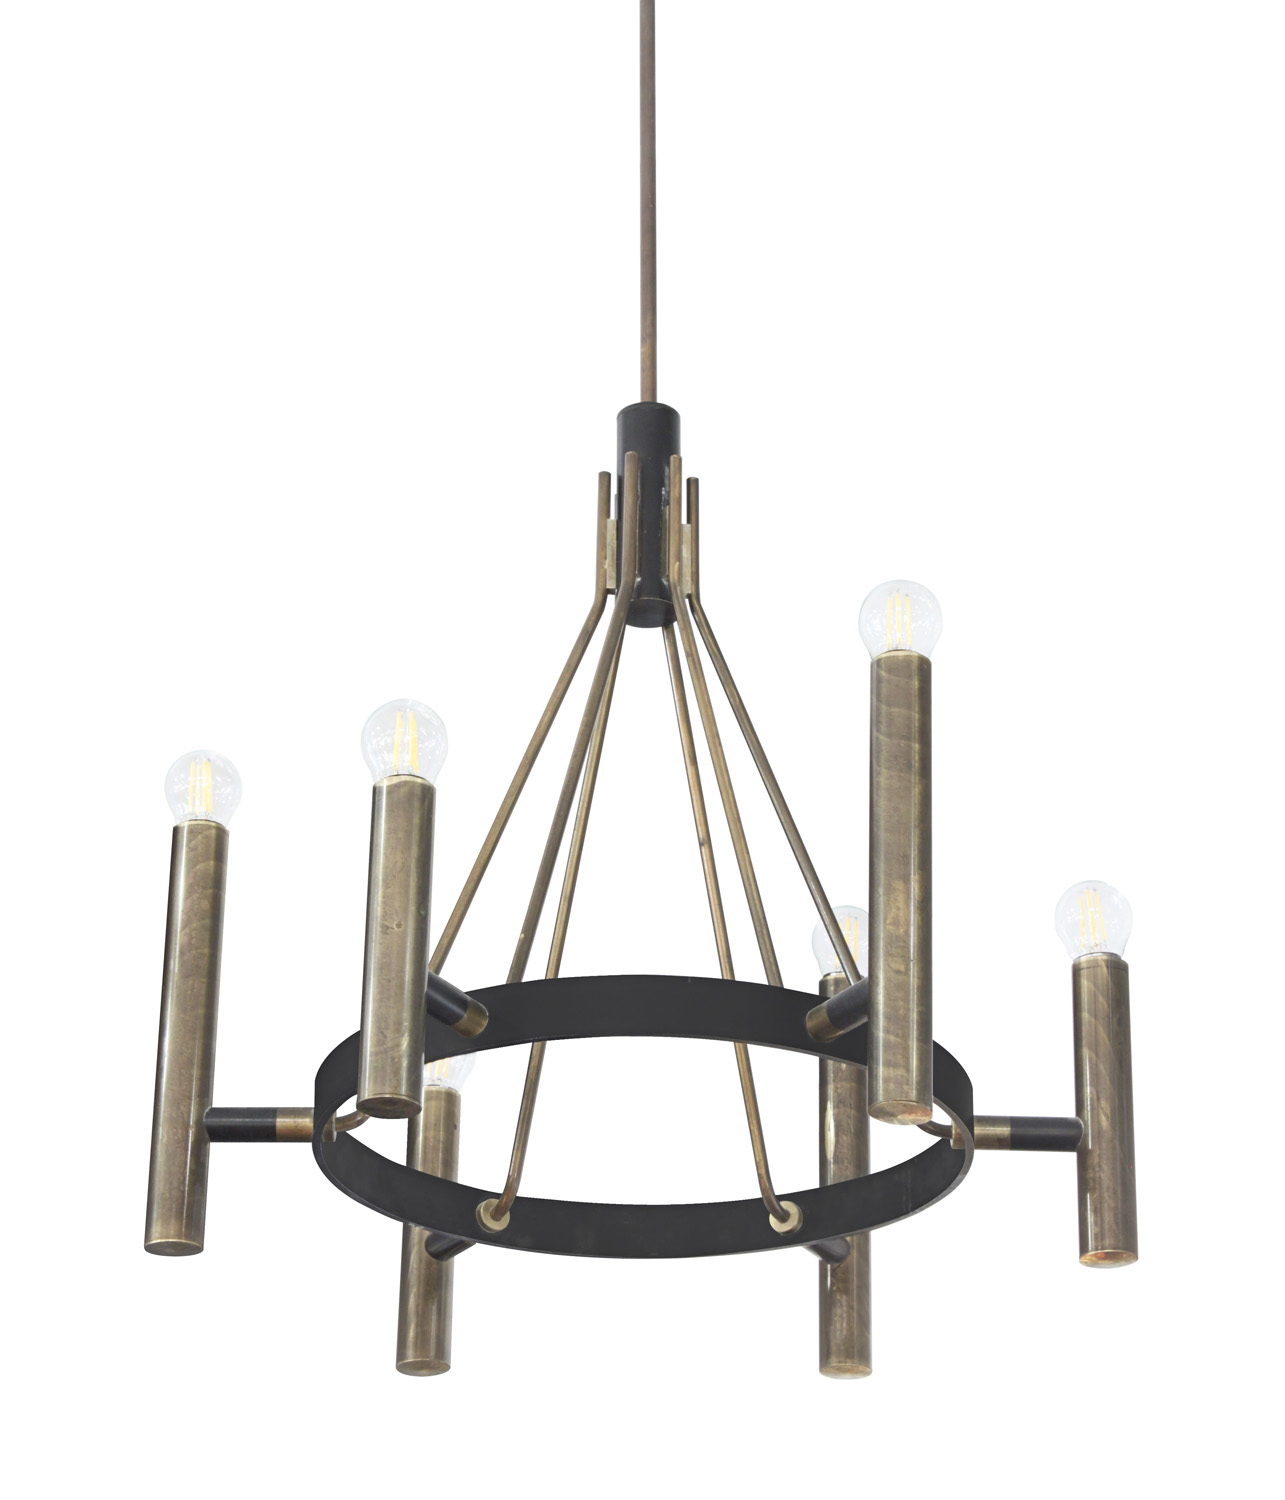 50s 55 Ital blk metal+brass chandelier219 hires.jpg